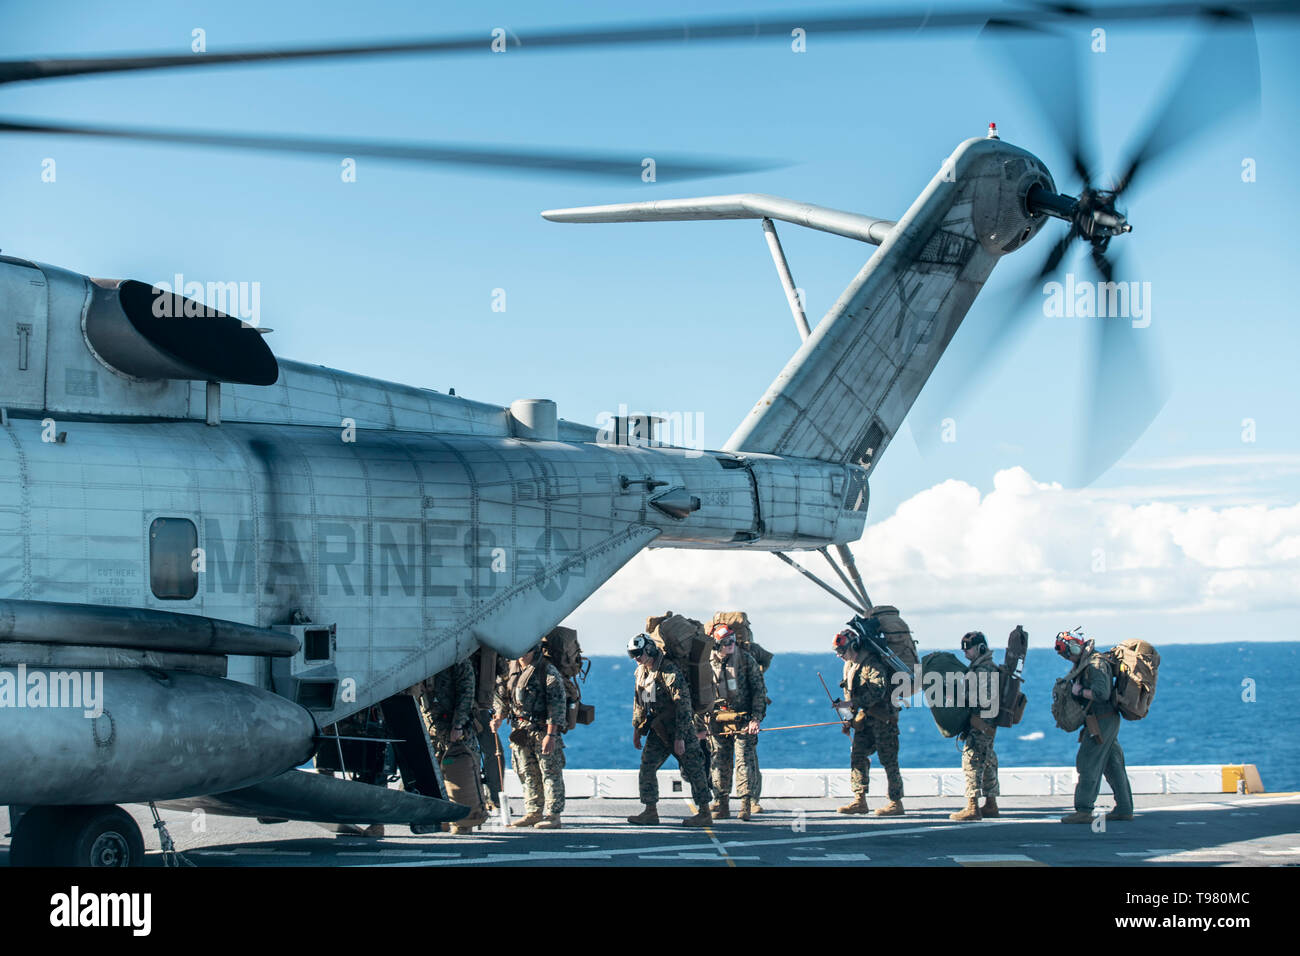 190511-M-HB658-0042 PACIFIC OCEAN (May 11, 2019) U.S. Marines with Marine Medium Tiltrotor Squadron (VMM) 163 (Reinforced), 11th Marine Expeditionary Unit (MEU), load into a CH-53E aboard the San Antonio-class amphibious transport dock ship USS John P. Murtha (LPD 26). The Marines and Sailors of the 11th MEU are conducting routine operations as part of the Boxer Amphibious Ready Group. (U.S. Marine Corps photo by Staff Sgt. Donald Holbert) - Stock Image